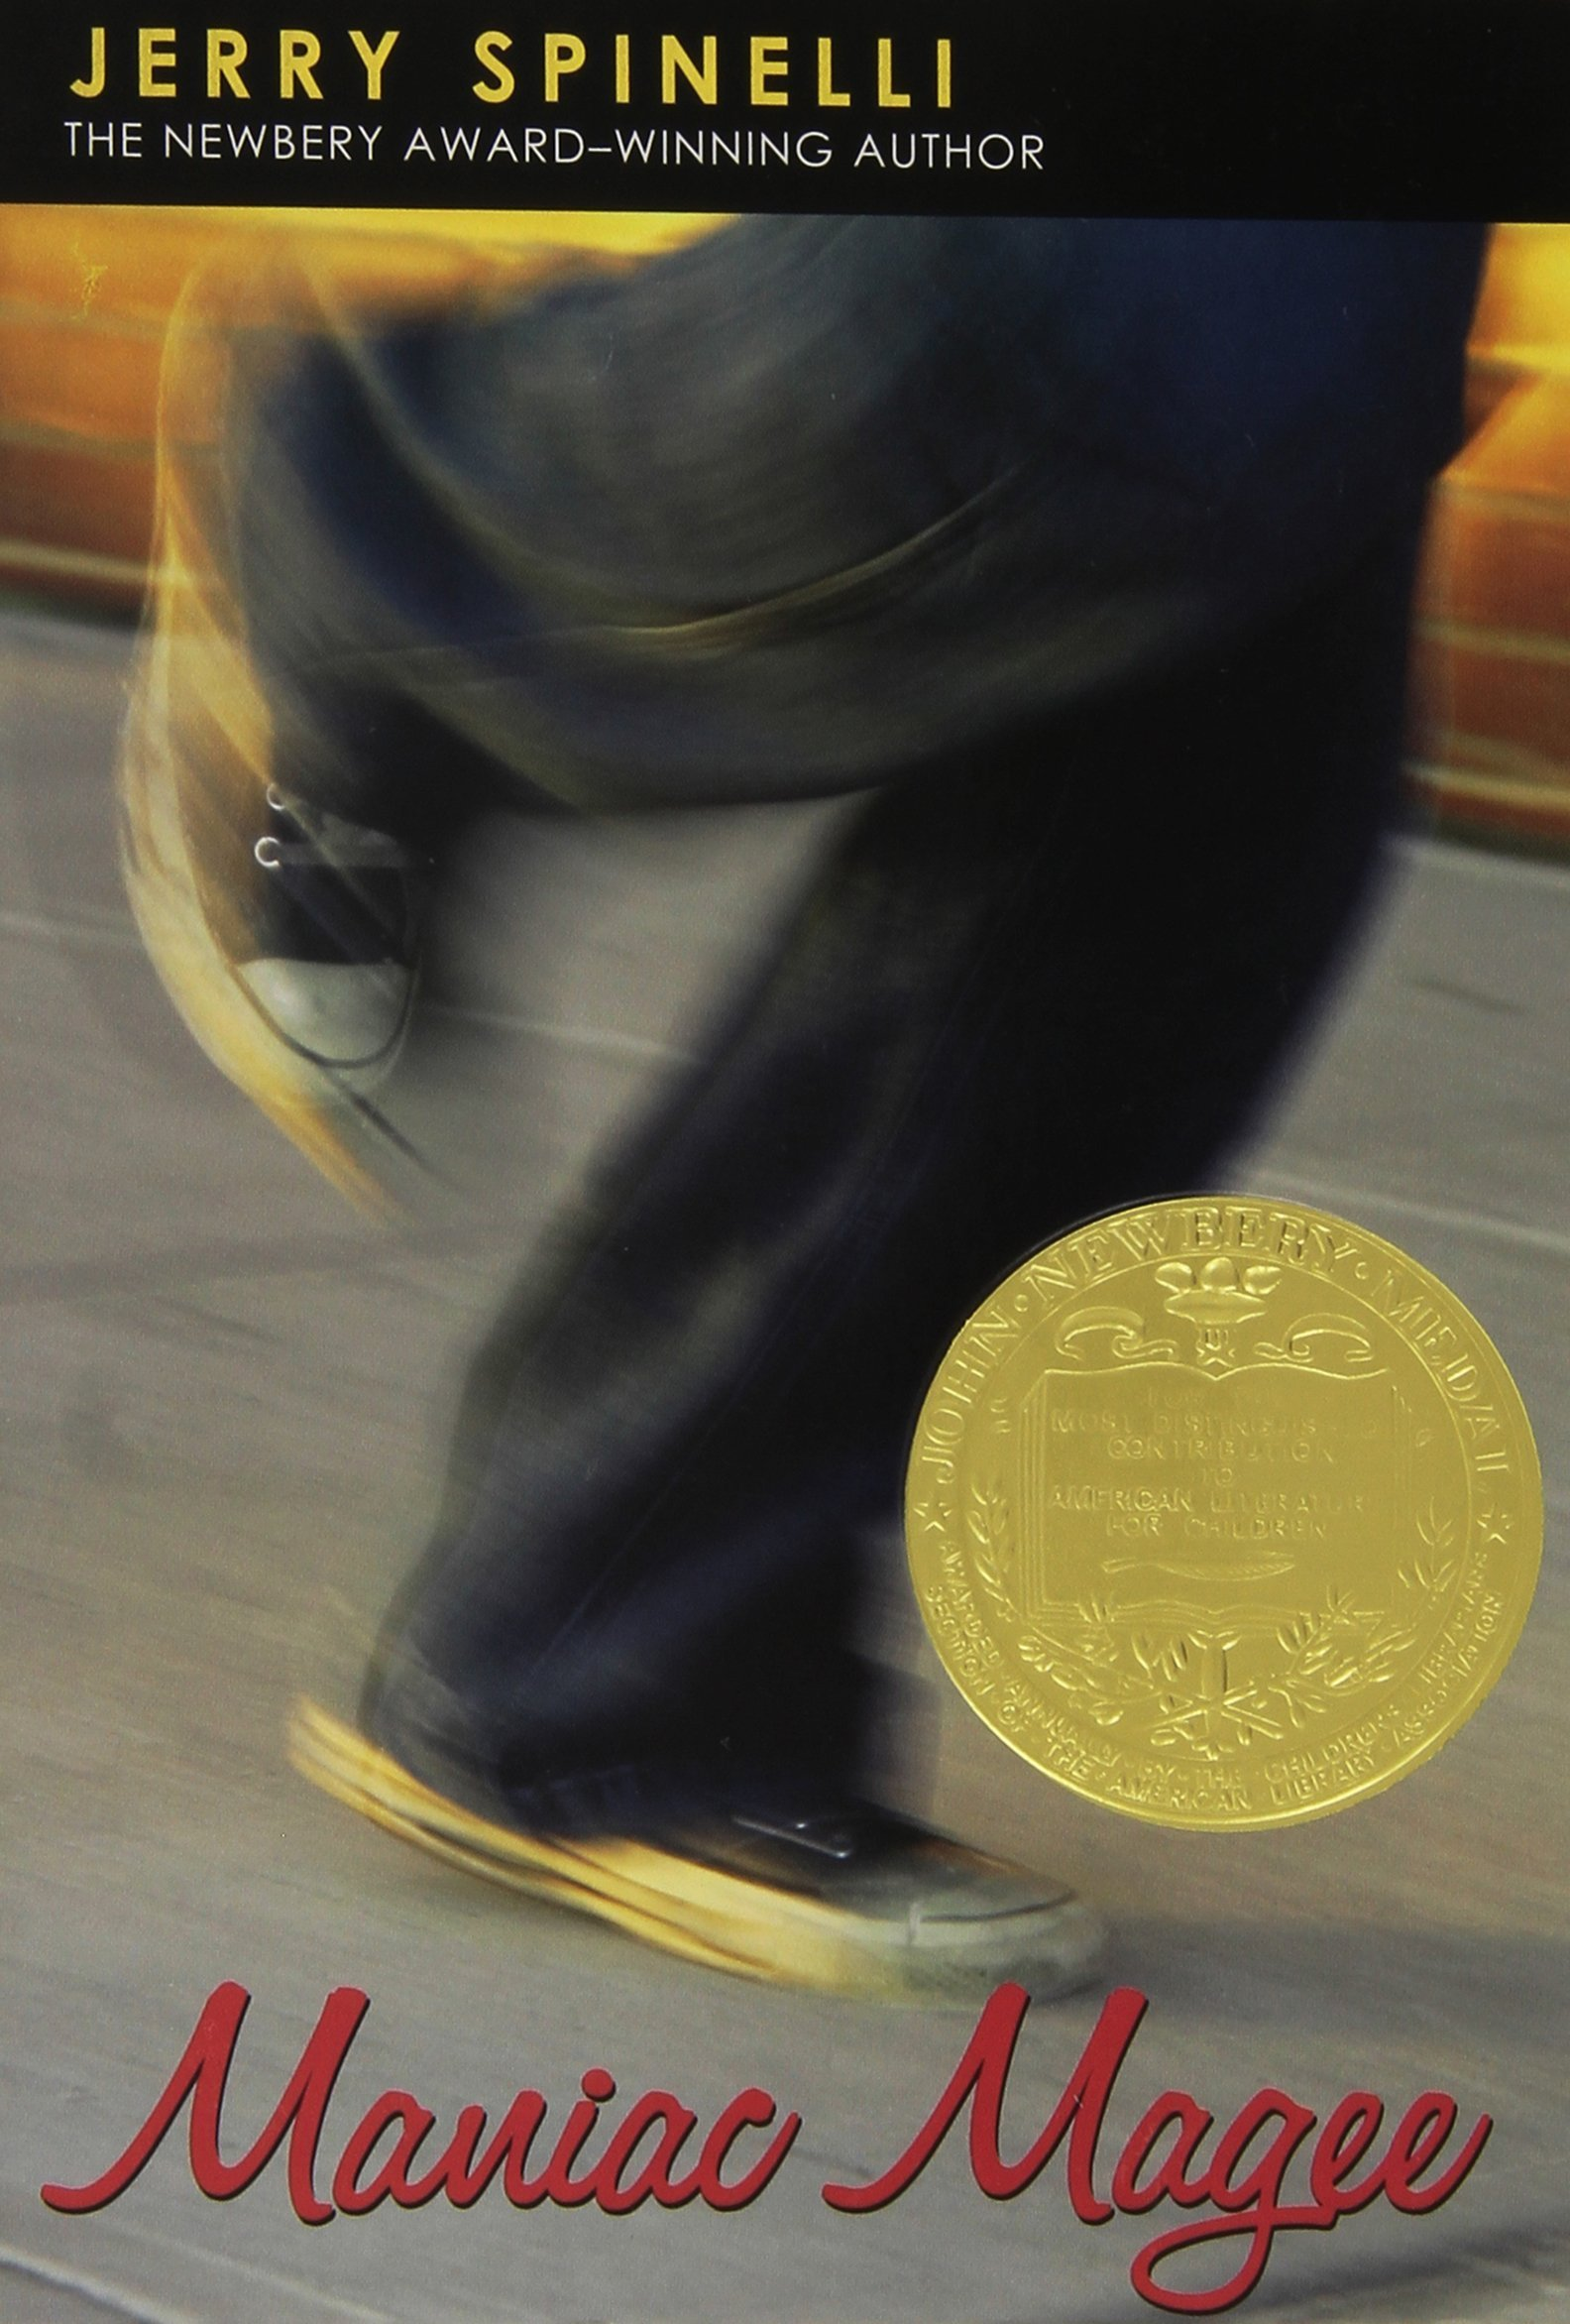 Maniac Magee: Jerry Spinelli: 9780316809061: Amazon.com: Books